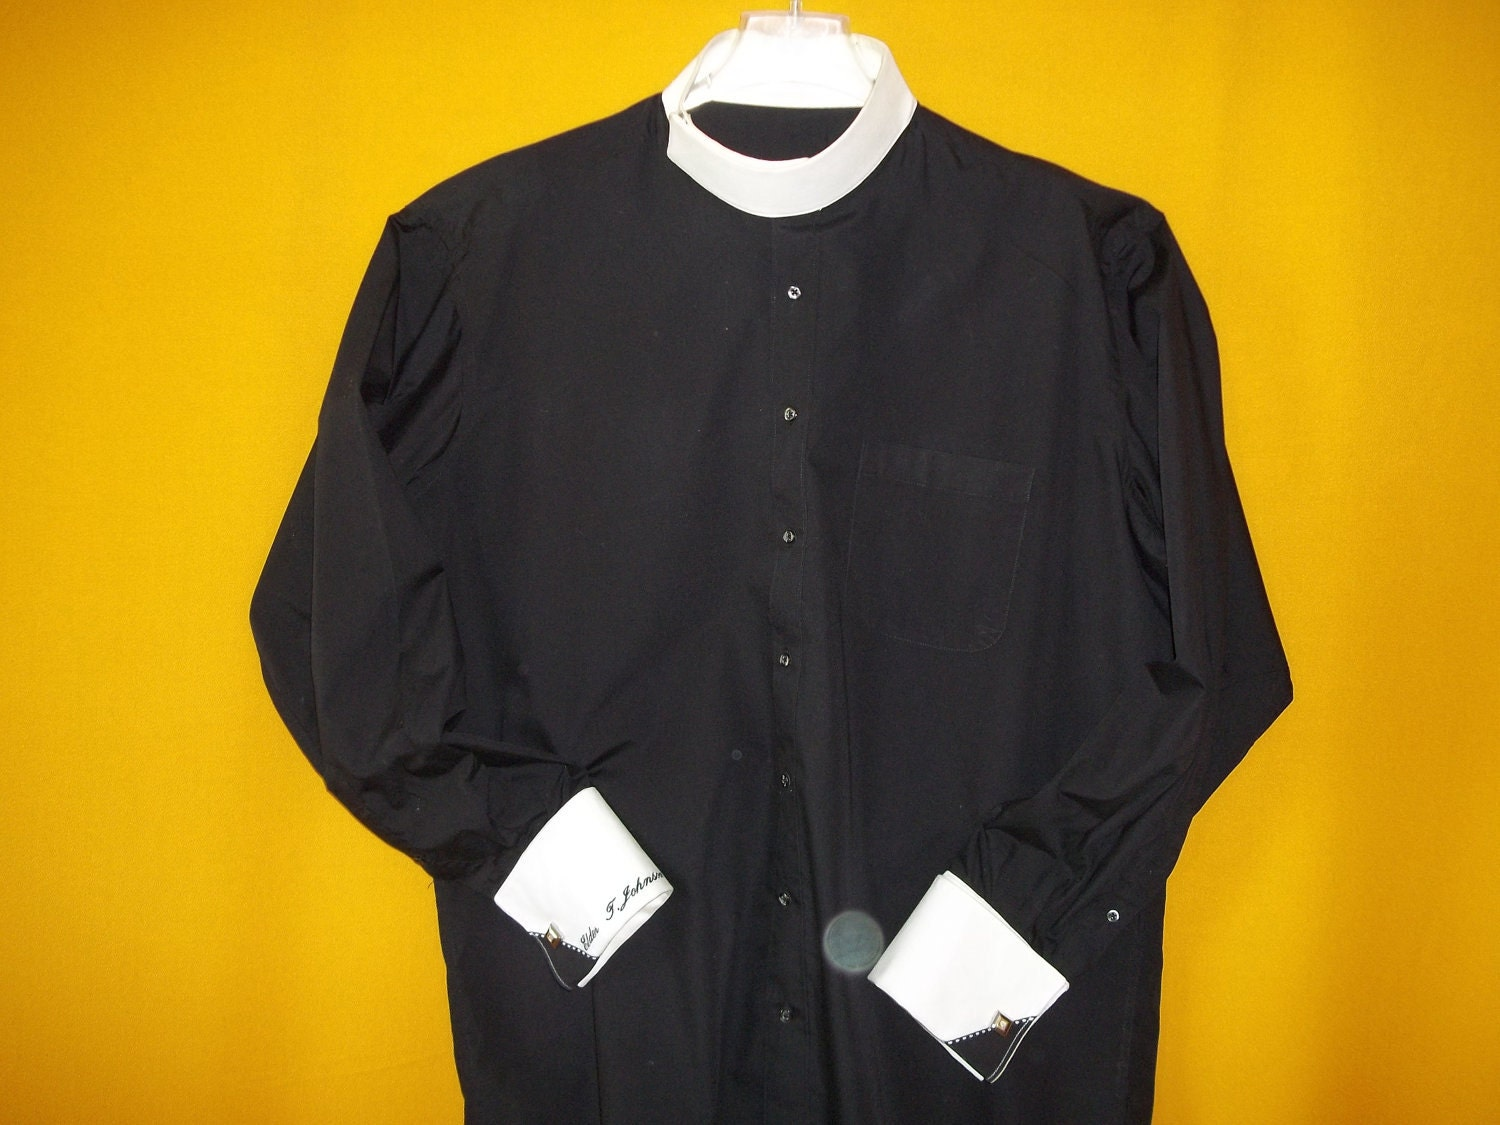 custom hand made clergy collar shirt with side snap pontiff